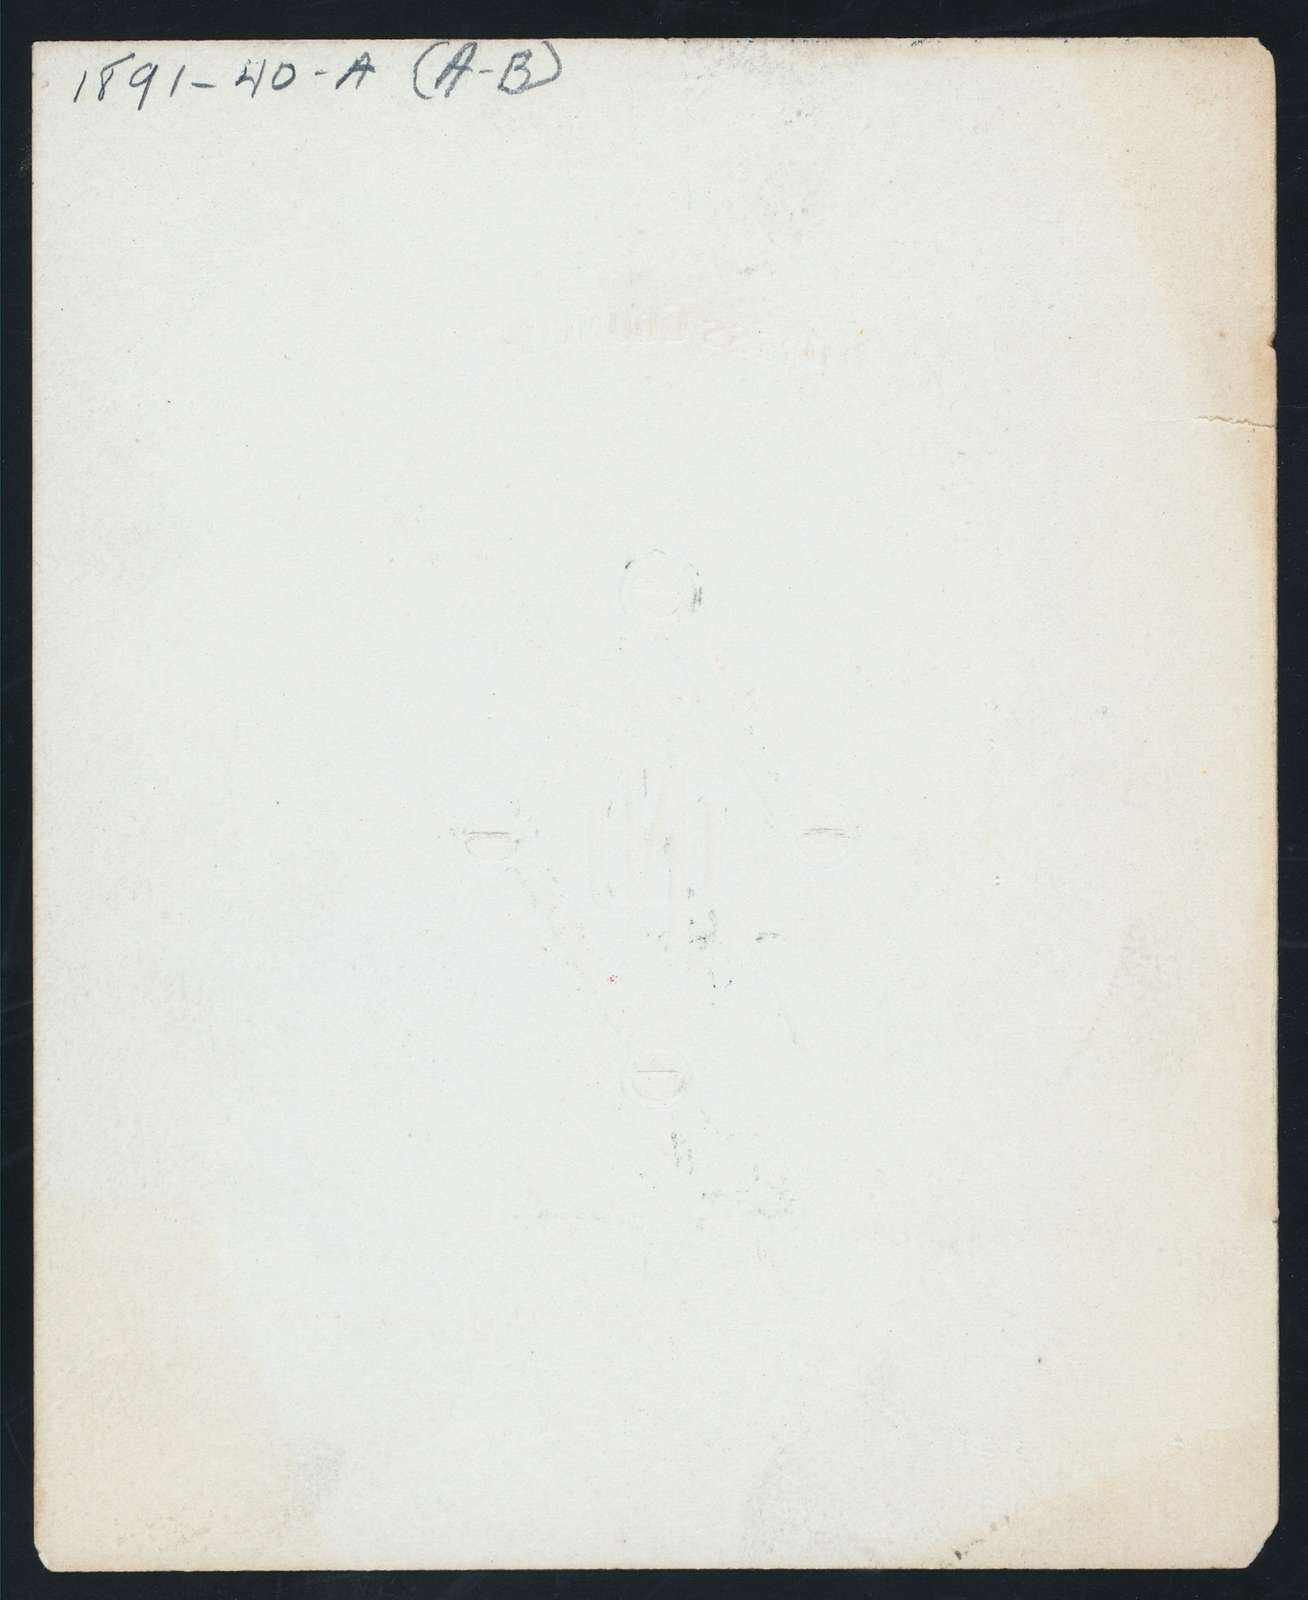 FIRST ANNUAL BANQUET AND COTILLON [held by] PRESS COUNCIL-71 [at] AUDITORIUM HOTEL (HOT;)